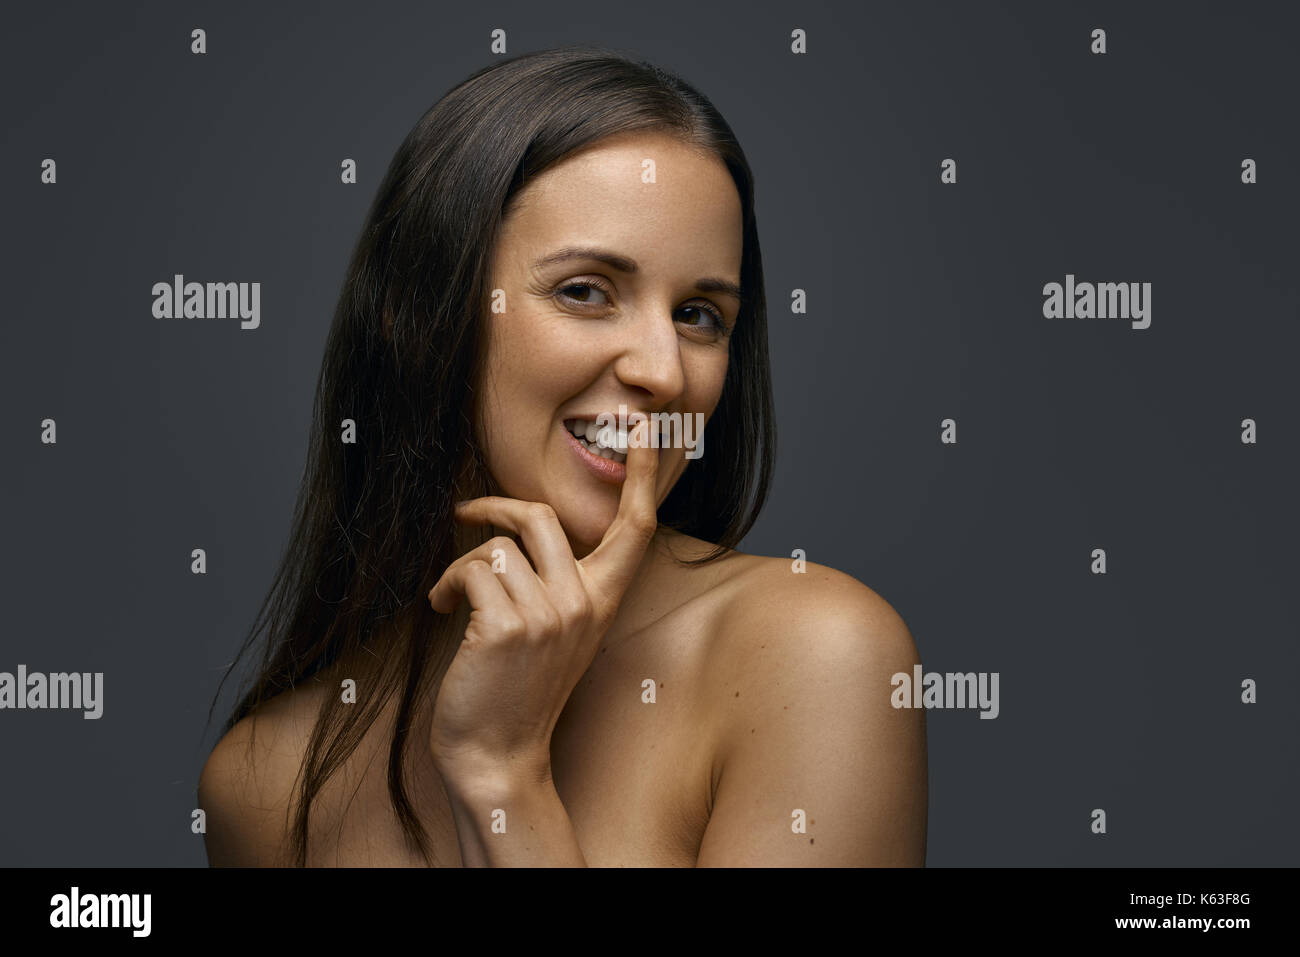 Portrait of young dark-haired seducing woman with bare shoulders against dark background - Stock Image